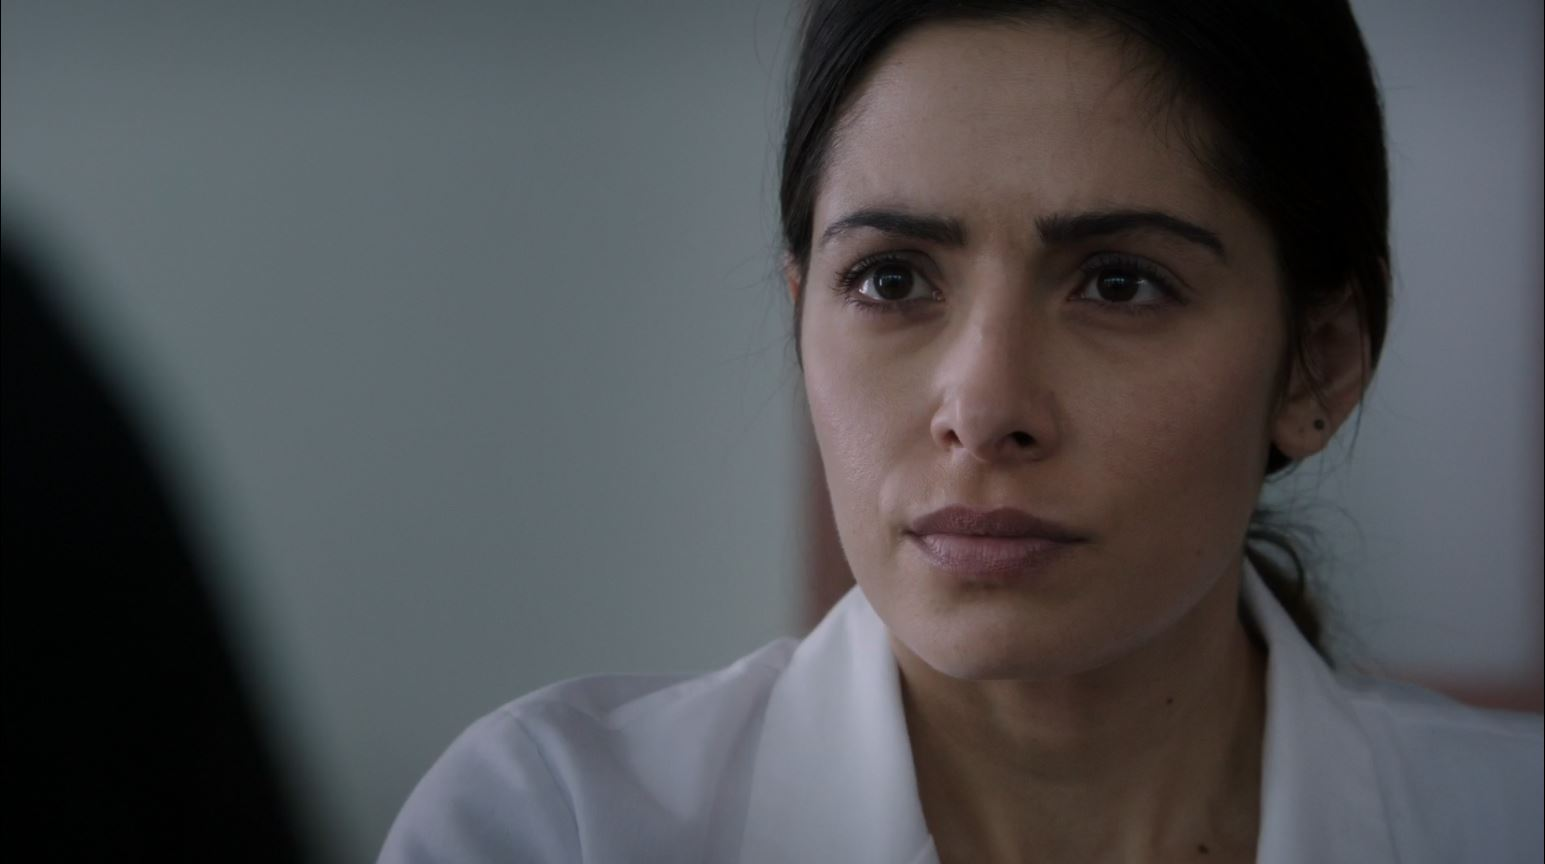 Person of Interest - Lethe - Sarah Shahi as Samantha Shaw